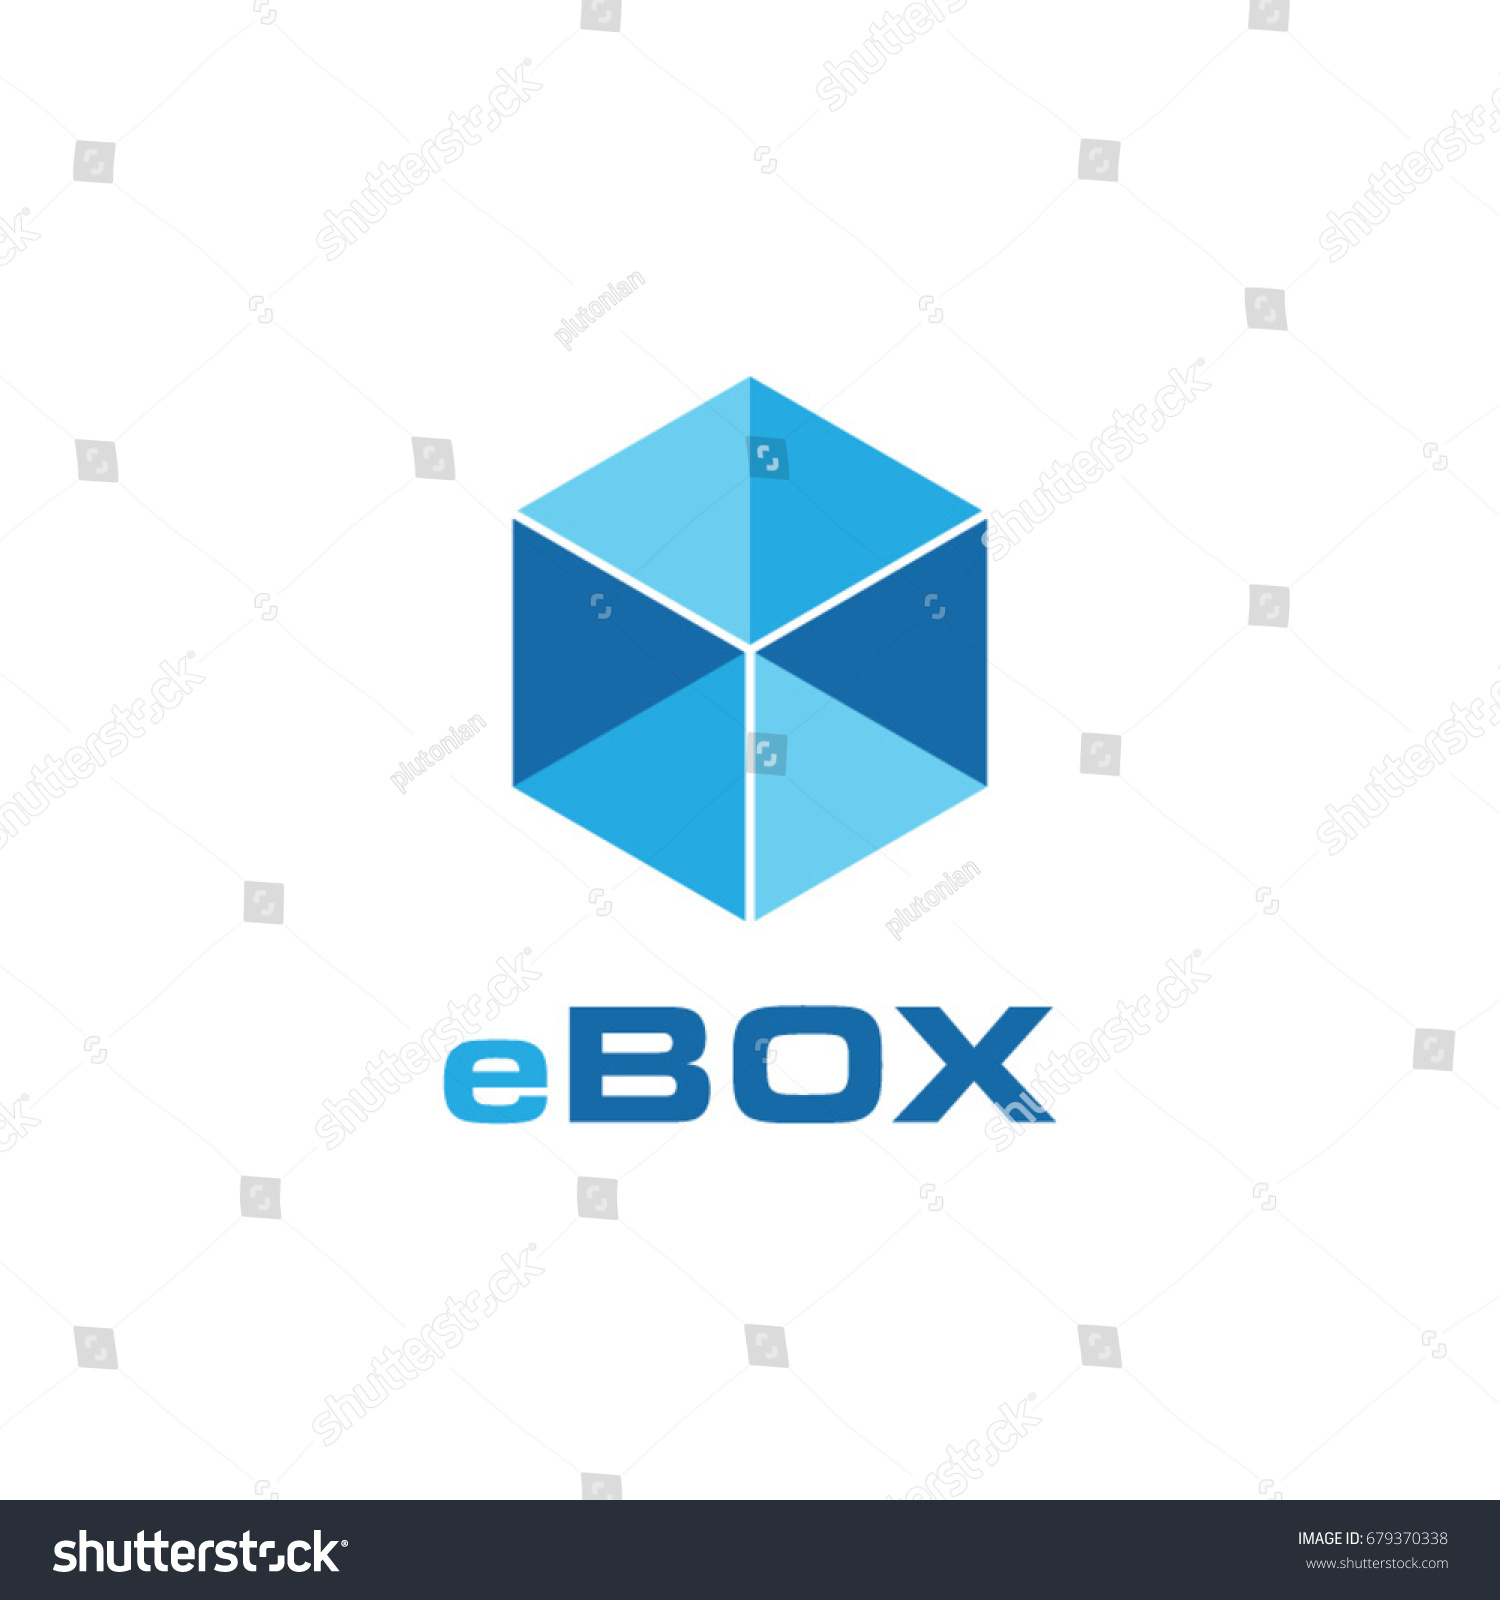 Abstract Transparent Blue Box Logo Symbol Stock Vector 679370338